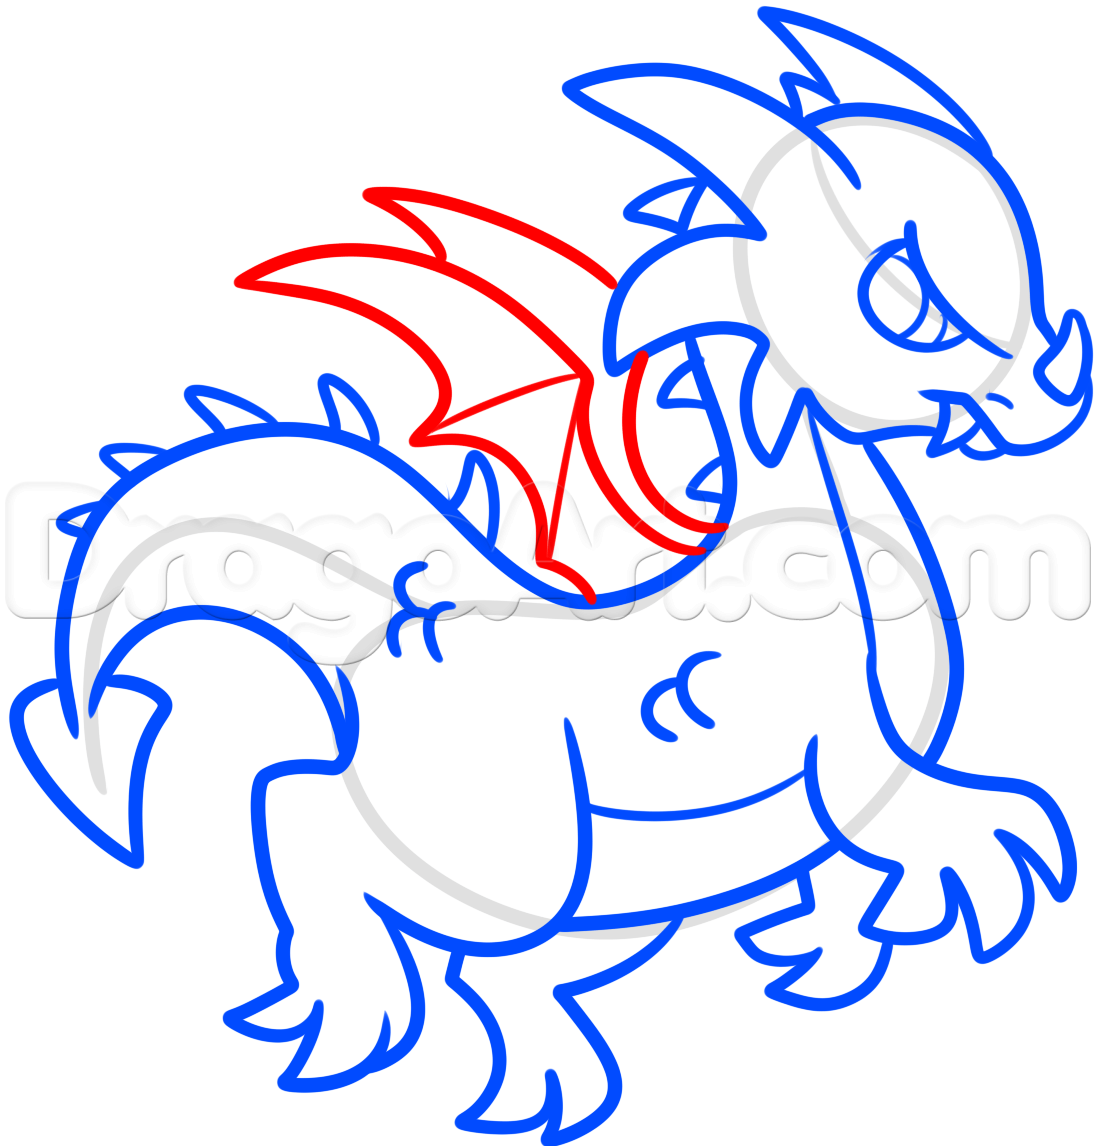 1096x1146 How To Draw A Simple Dragon, Step